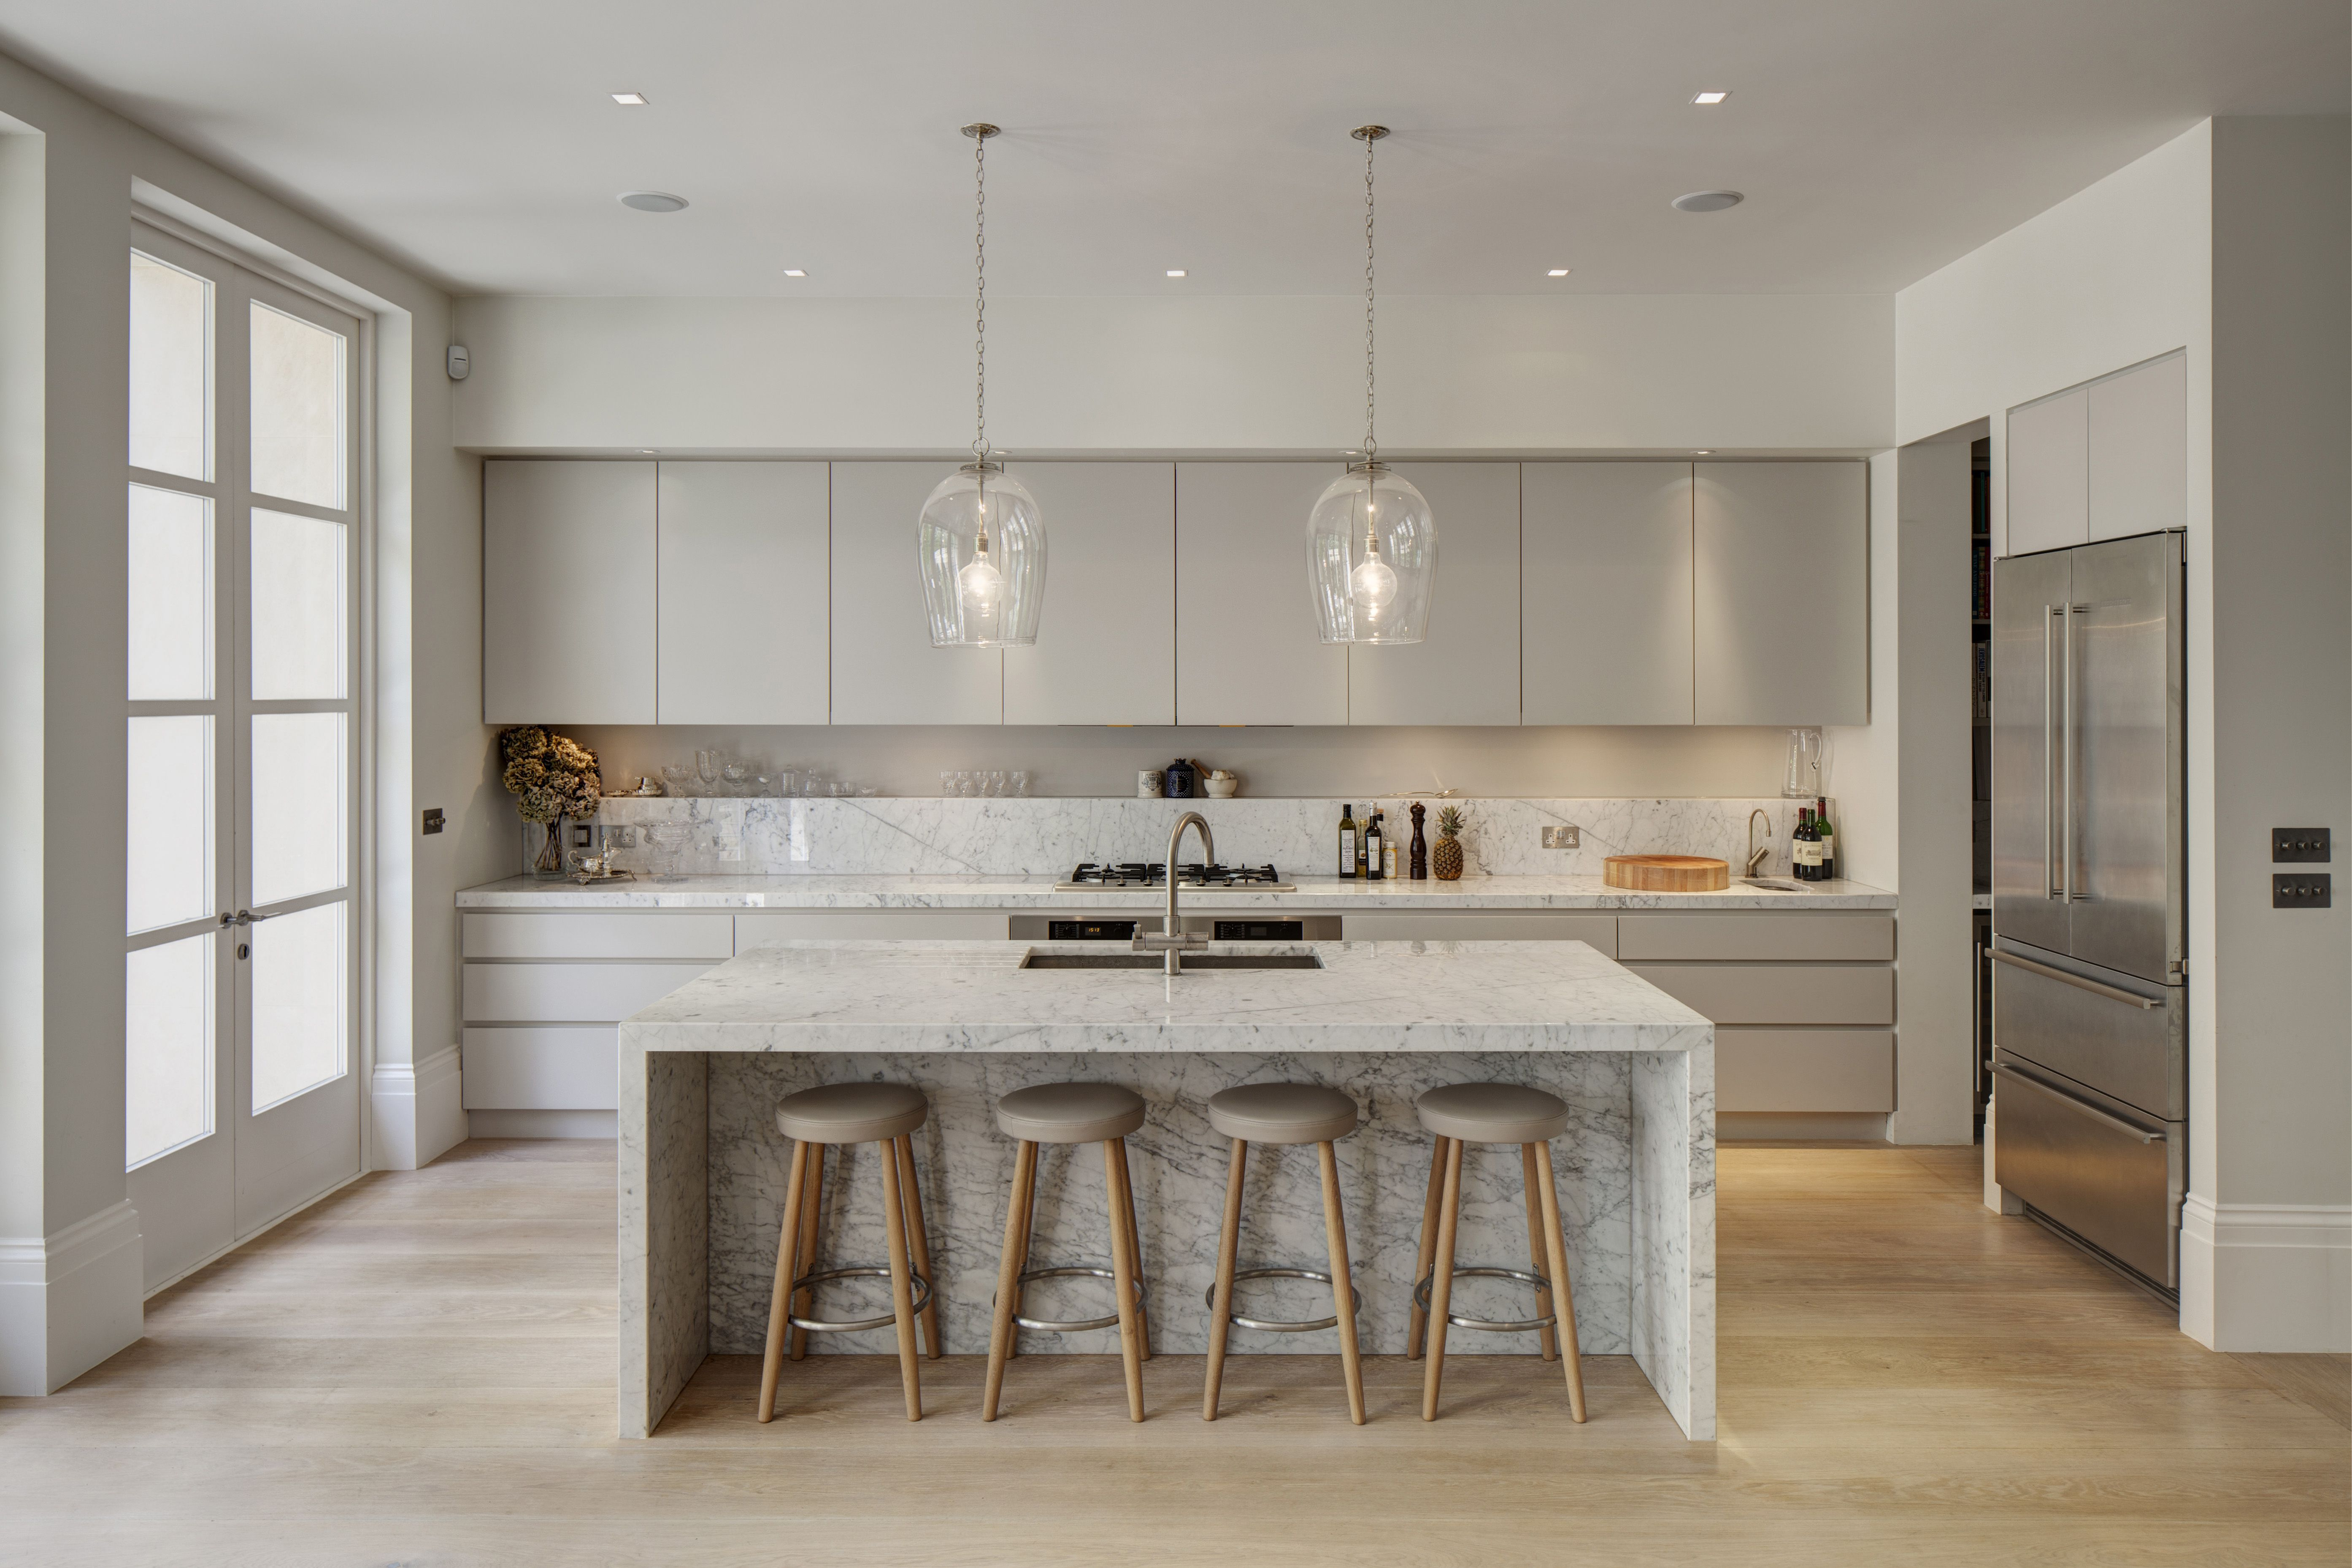 Kitchen with marble island in modern family home 2012, design by De Rosee Sa